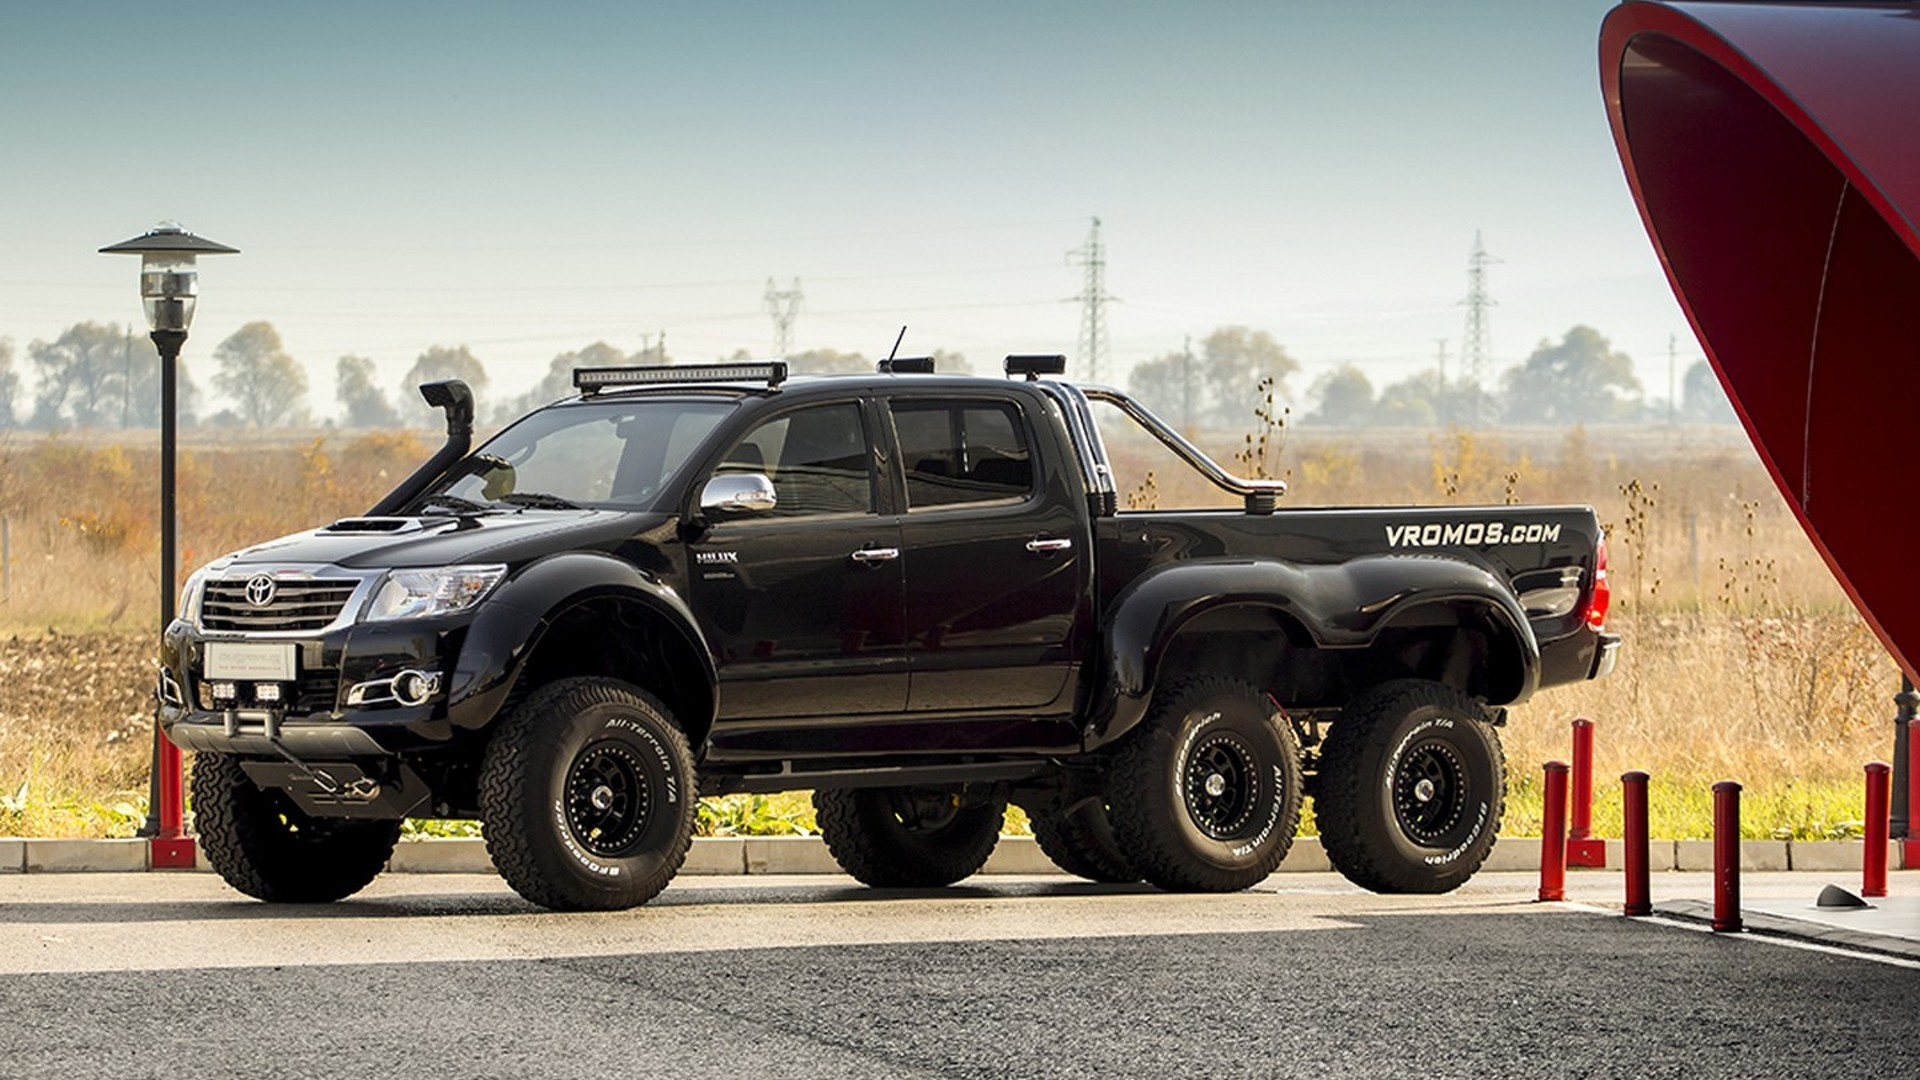 Toyota Hilux 6x6 Interior Customized By Overdrive Motor1 Com Photos